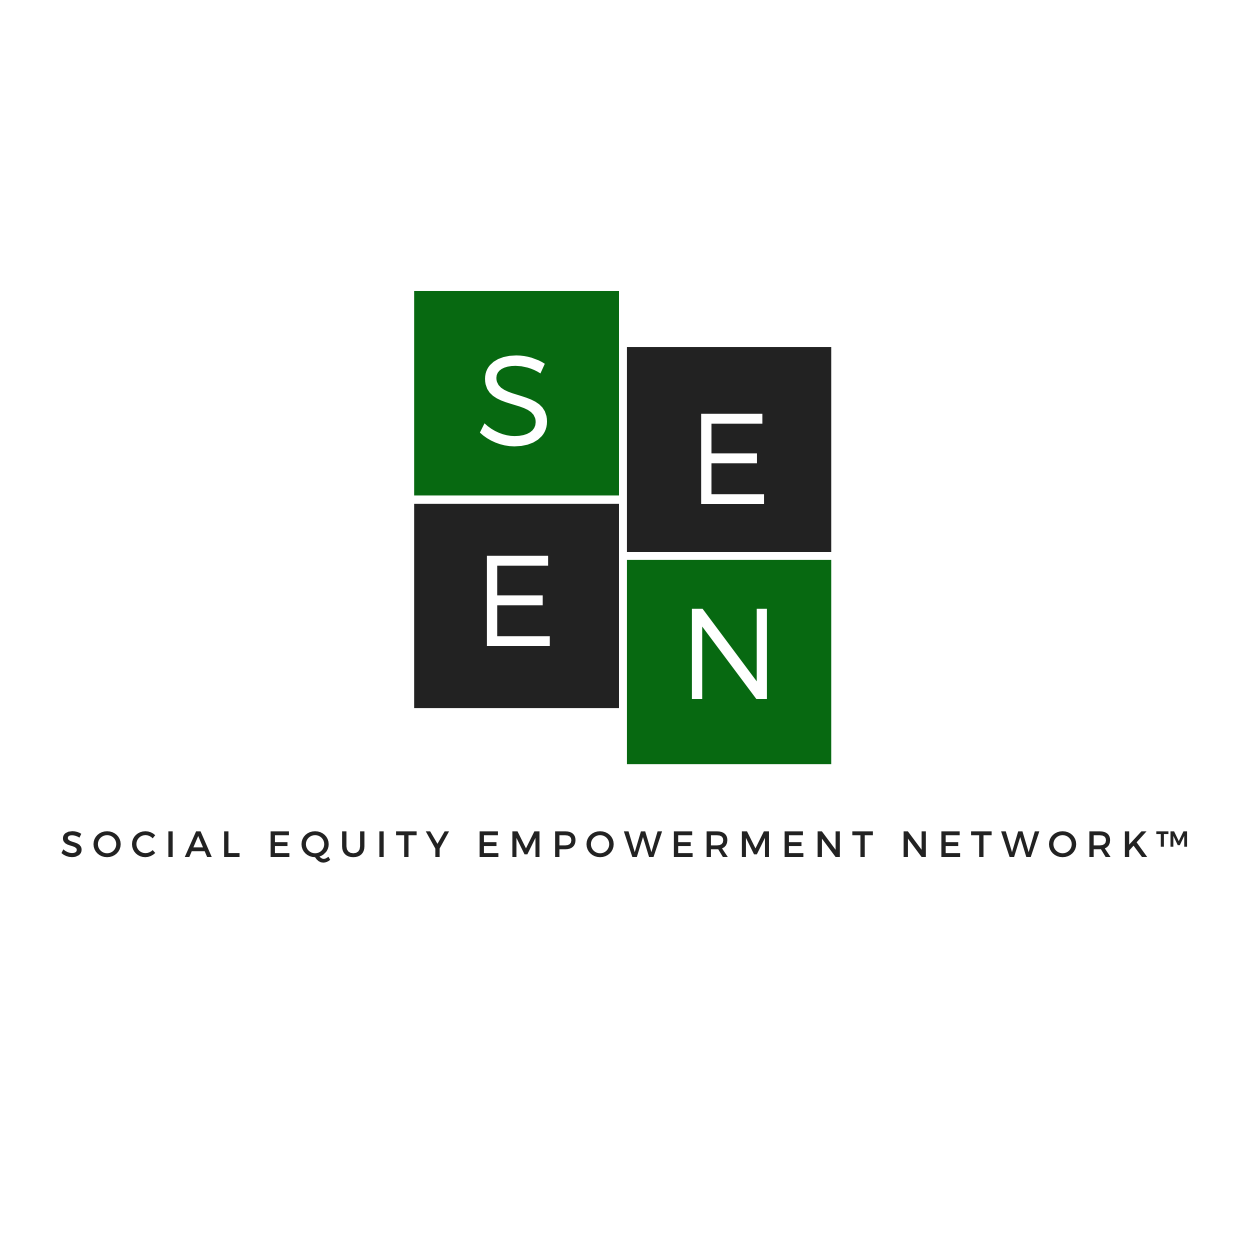 Social Equity Empowerment Network